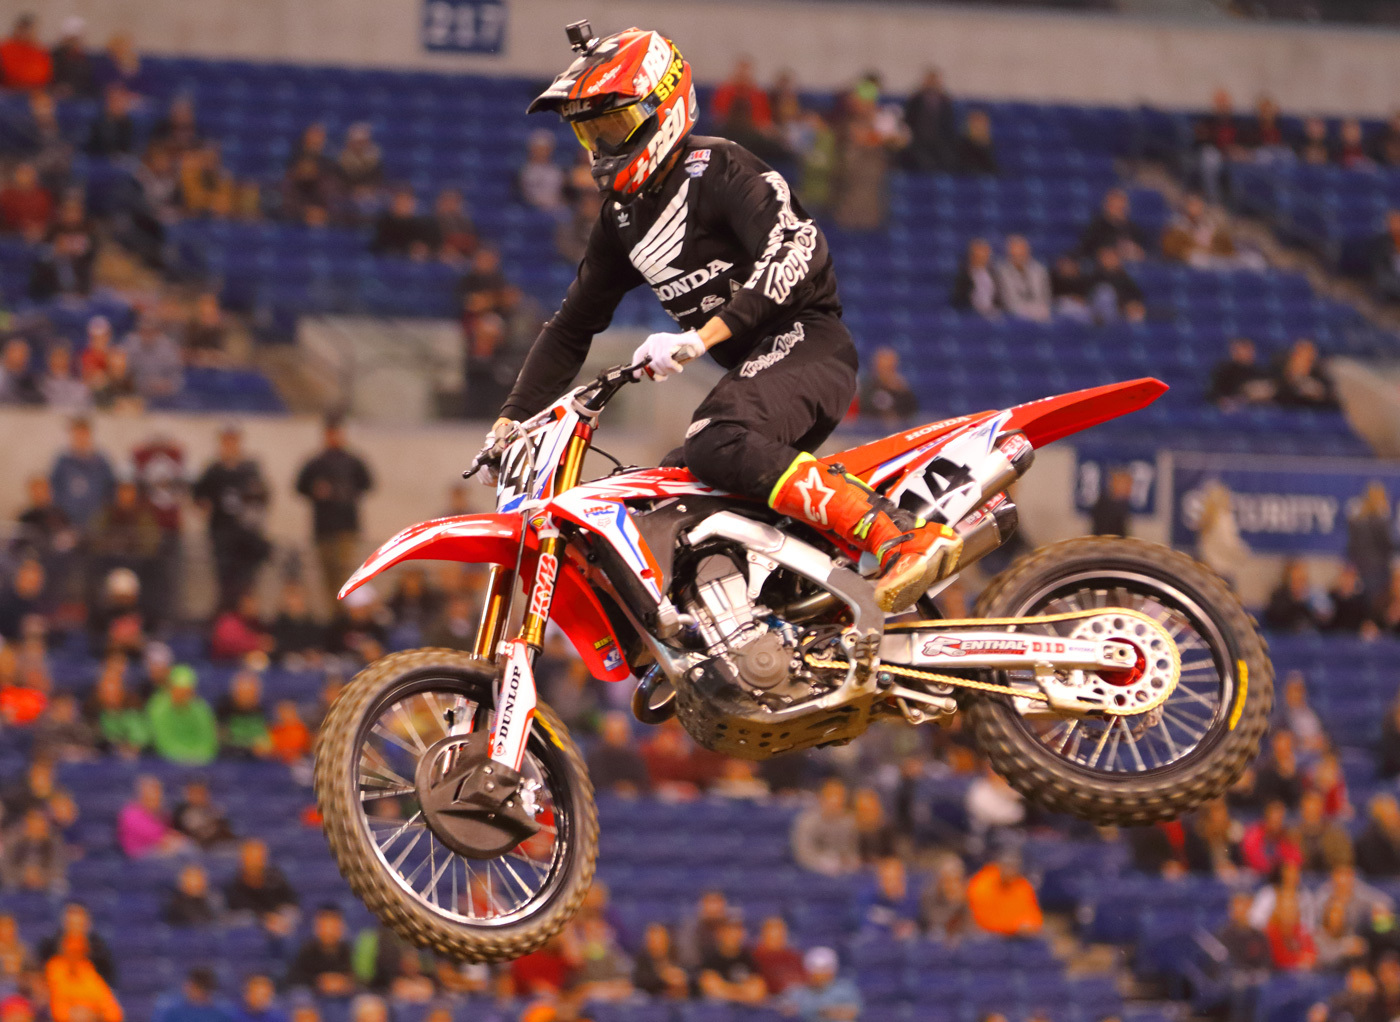 2017 Monster Energy Supercross Indianapolice_d0091546_08382192.jpg